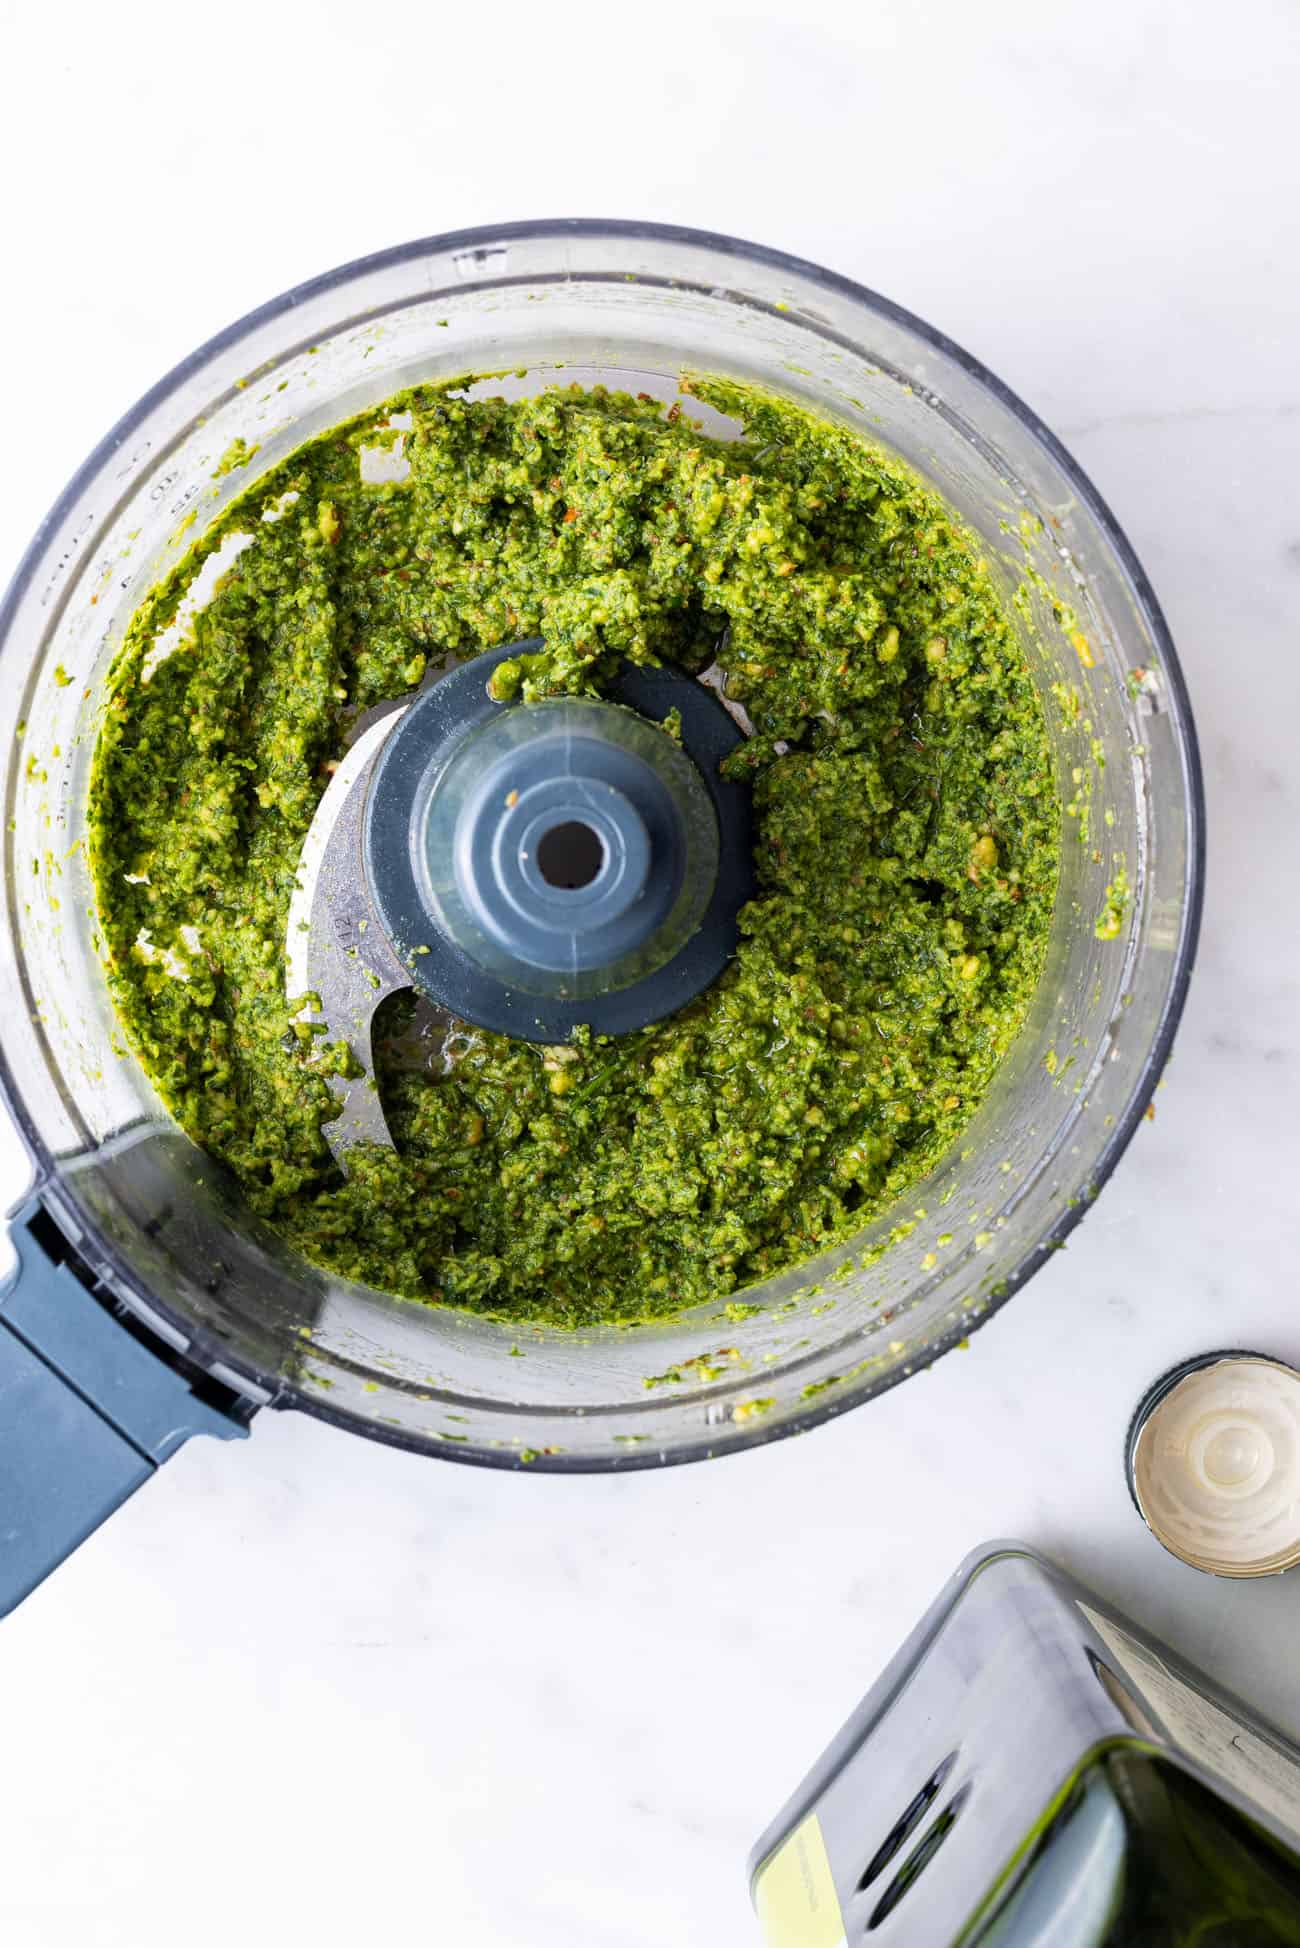 Vegan basil pesto in a food processor next to a bottle of olive oil